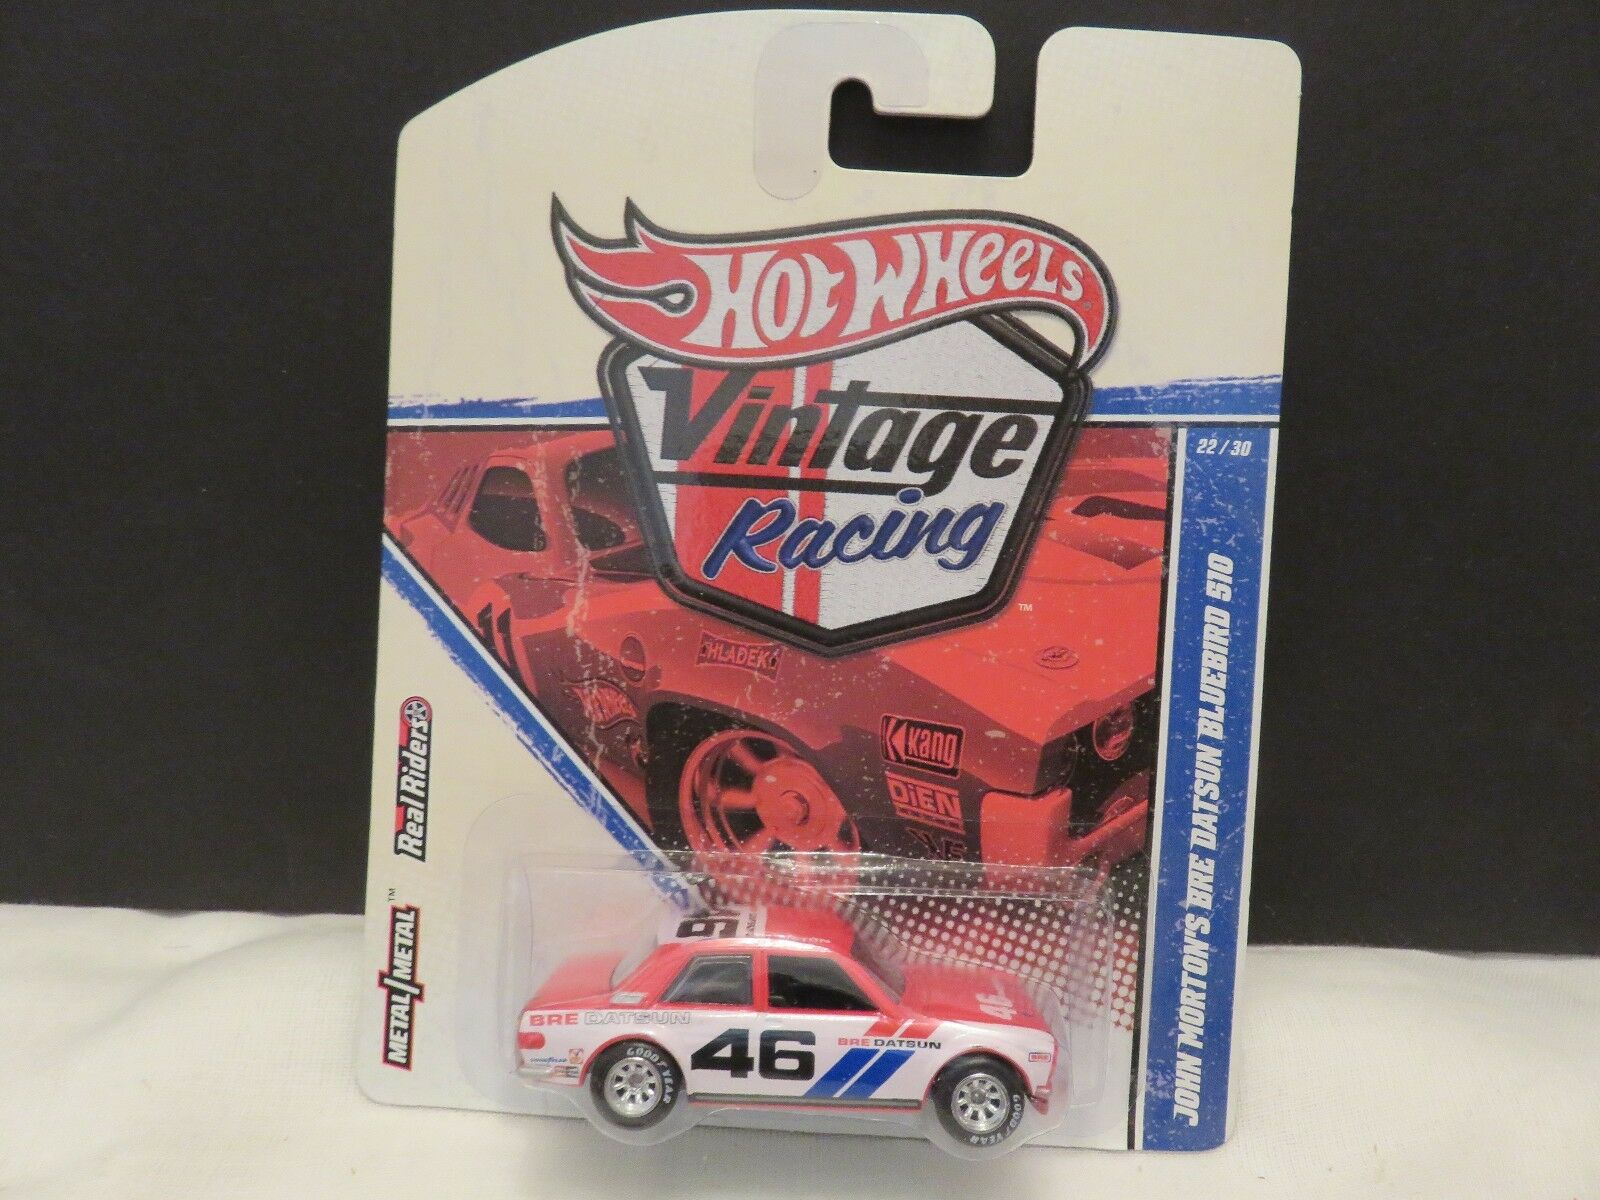 Hot Wheels VTG Racing John Morton's BRE DATSUN BlauBIRD 510 Die-Cast Real Riders